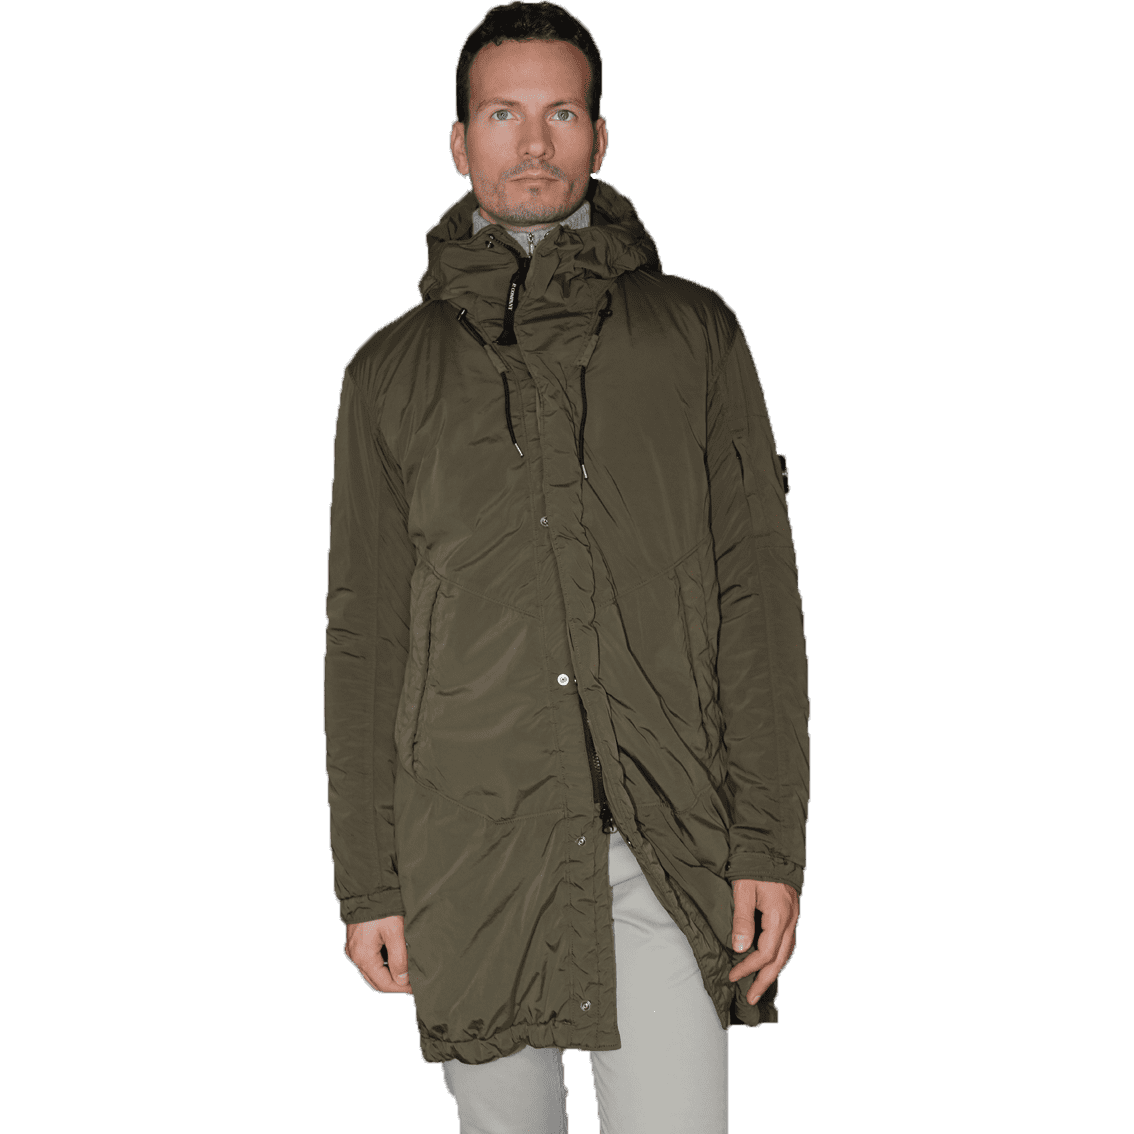 Cabinero Stiles Herrenmode Onlineshop C.P.Company Parka in Olive #03CMOW005A-001020G AW17-18